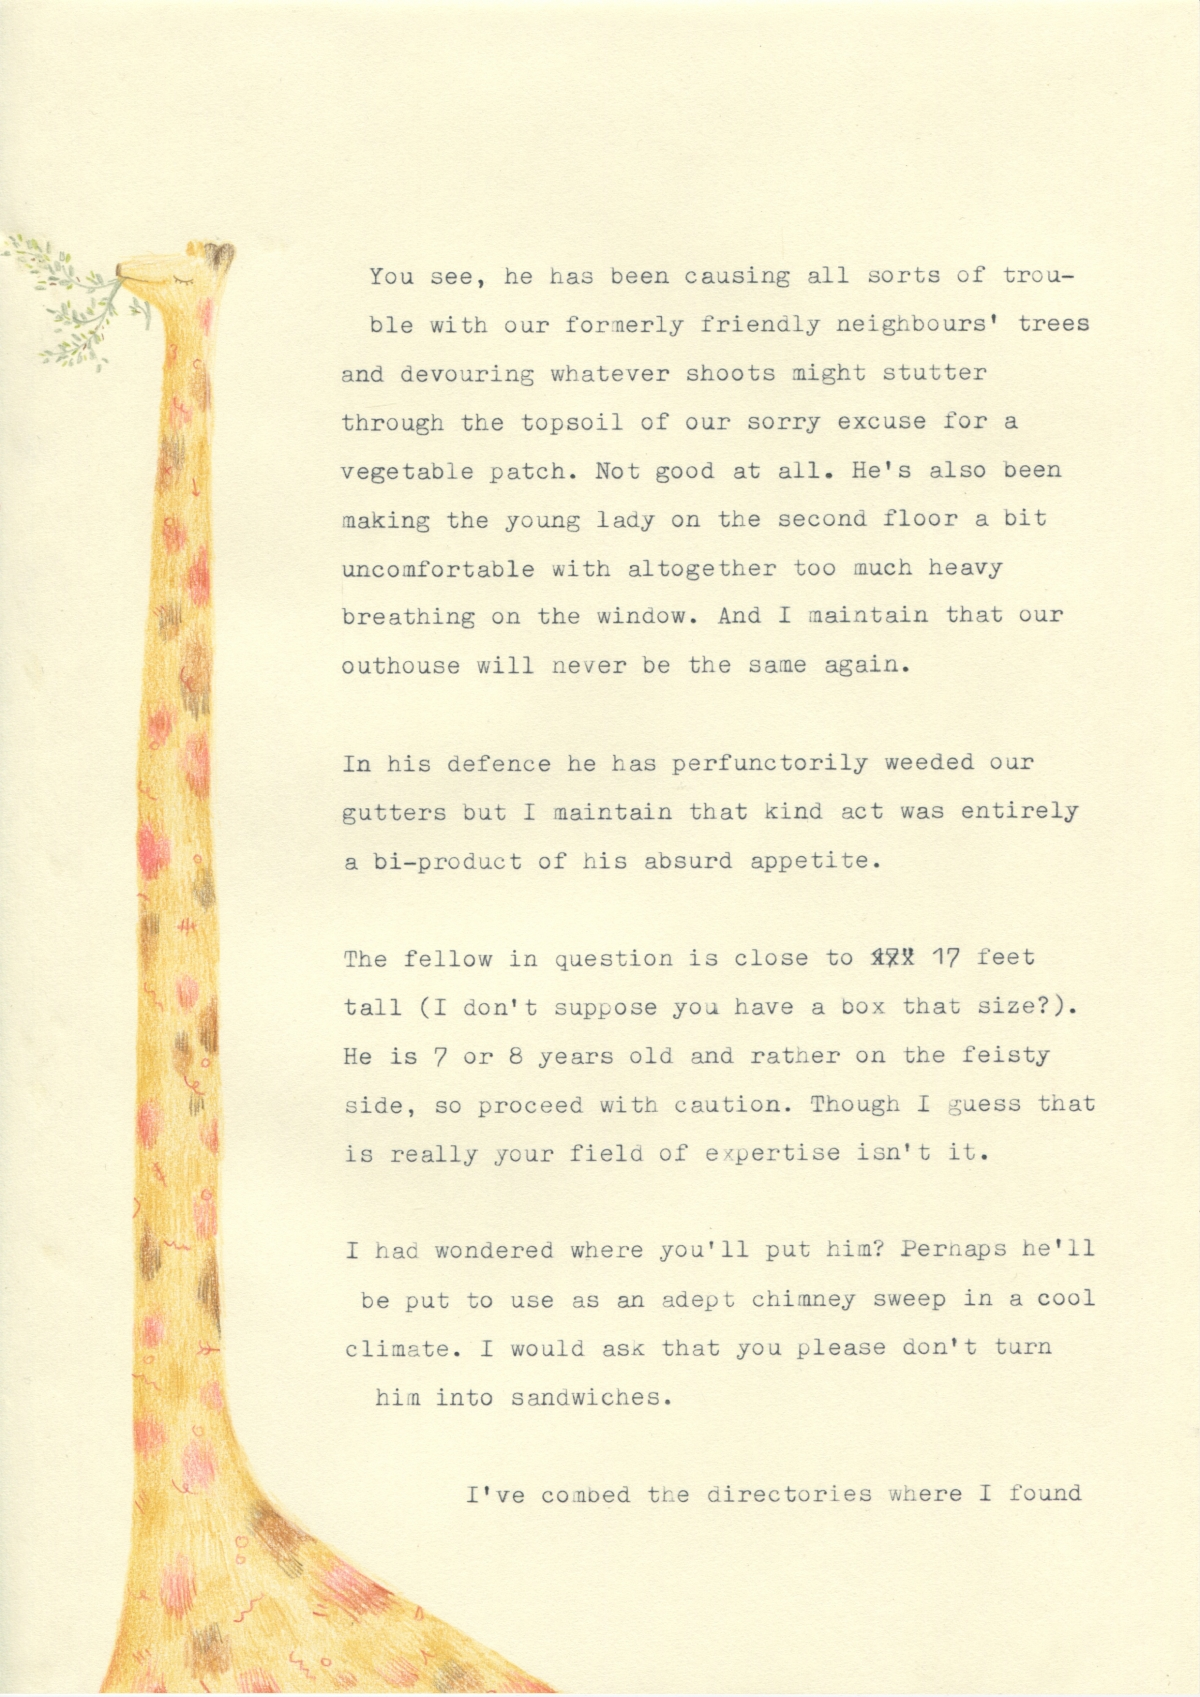 Letter to Giraffe Removals